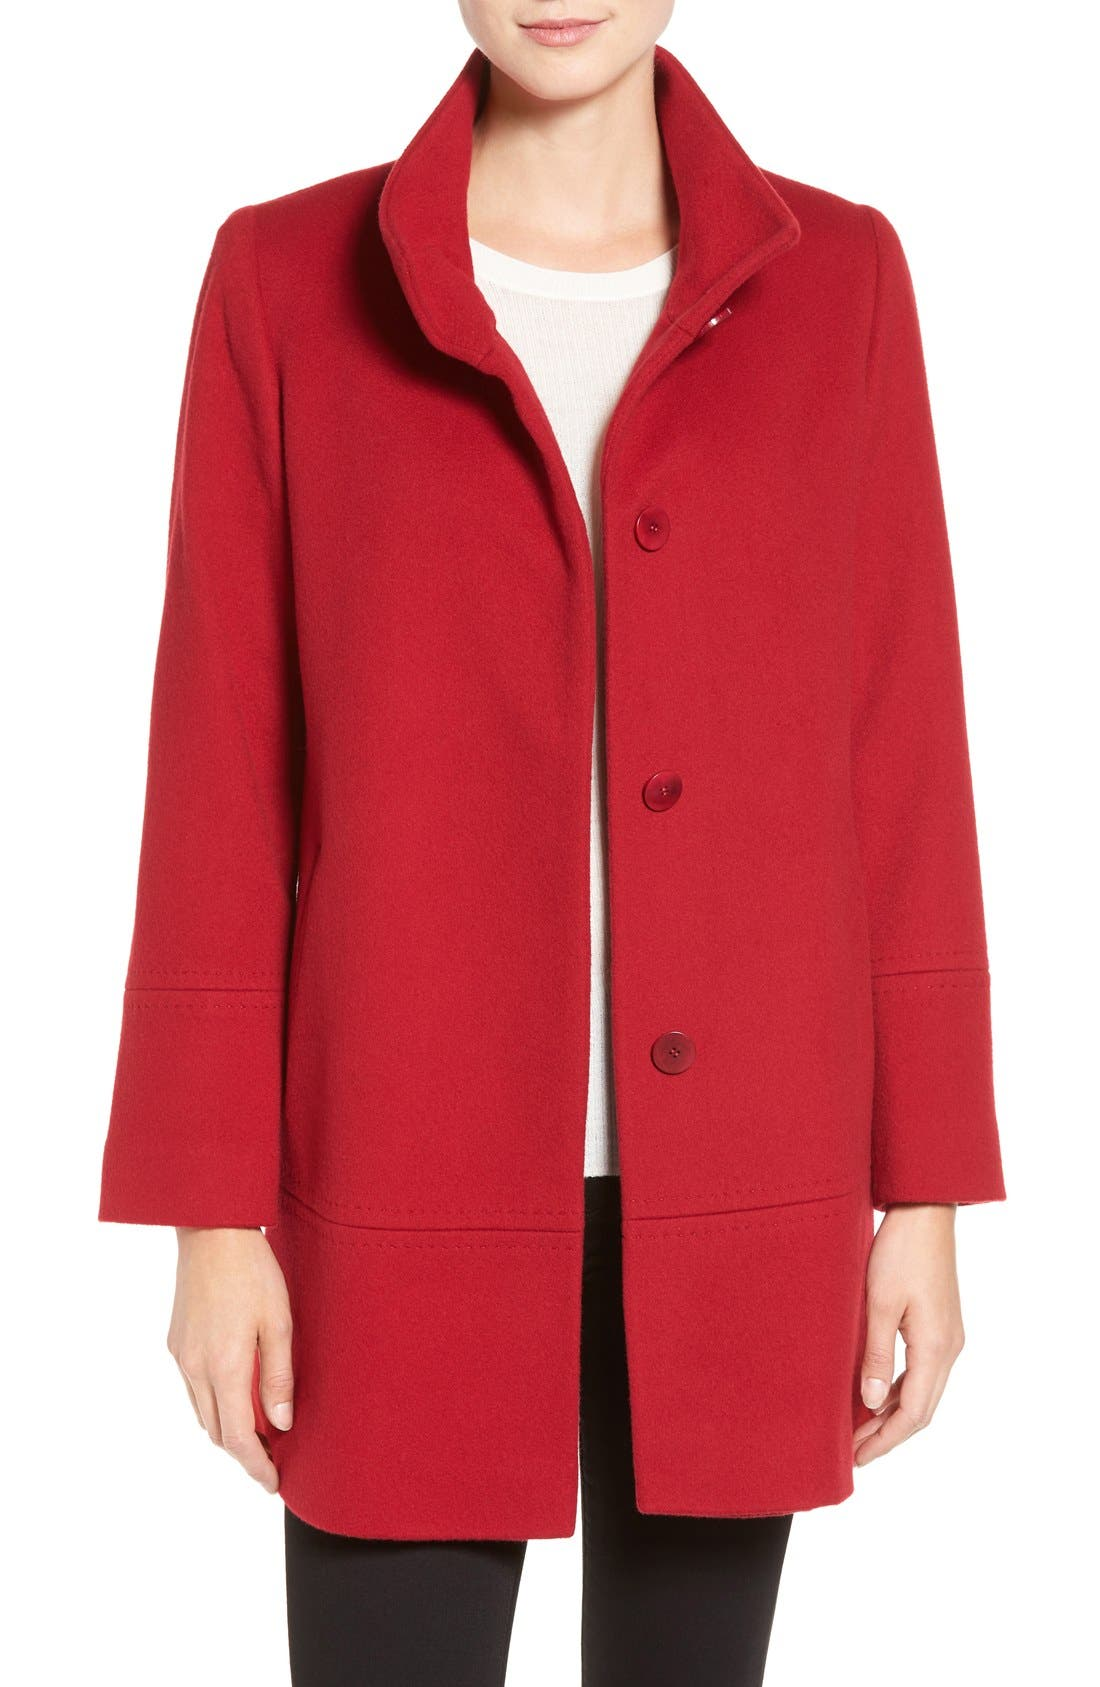 Alternate Image 1 Selected - Fleurette Loro Piana Wool Car Coat (Regular & Petite) (Nordstrom Exclusive)